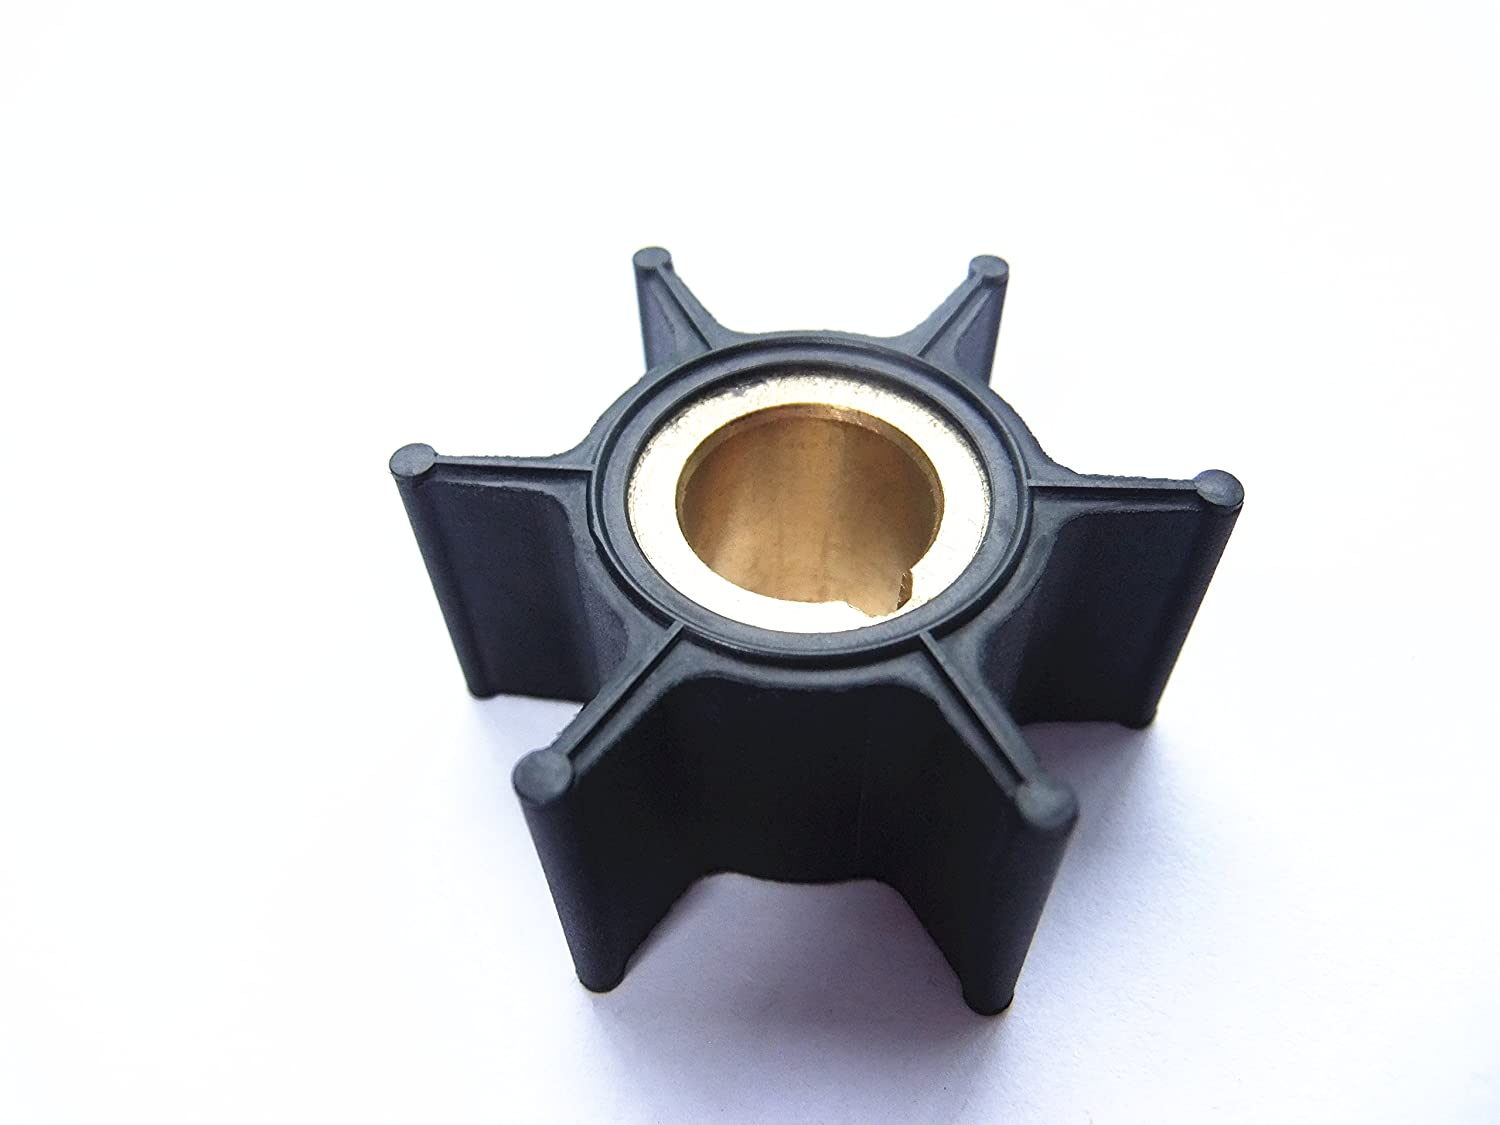 3B2-65021-1 18-8920 Boat Engine Impeller for Nissan Tohatsu 6HP 8HP 9.8HP Outboard Motor Water Pump SouthMarine